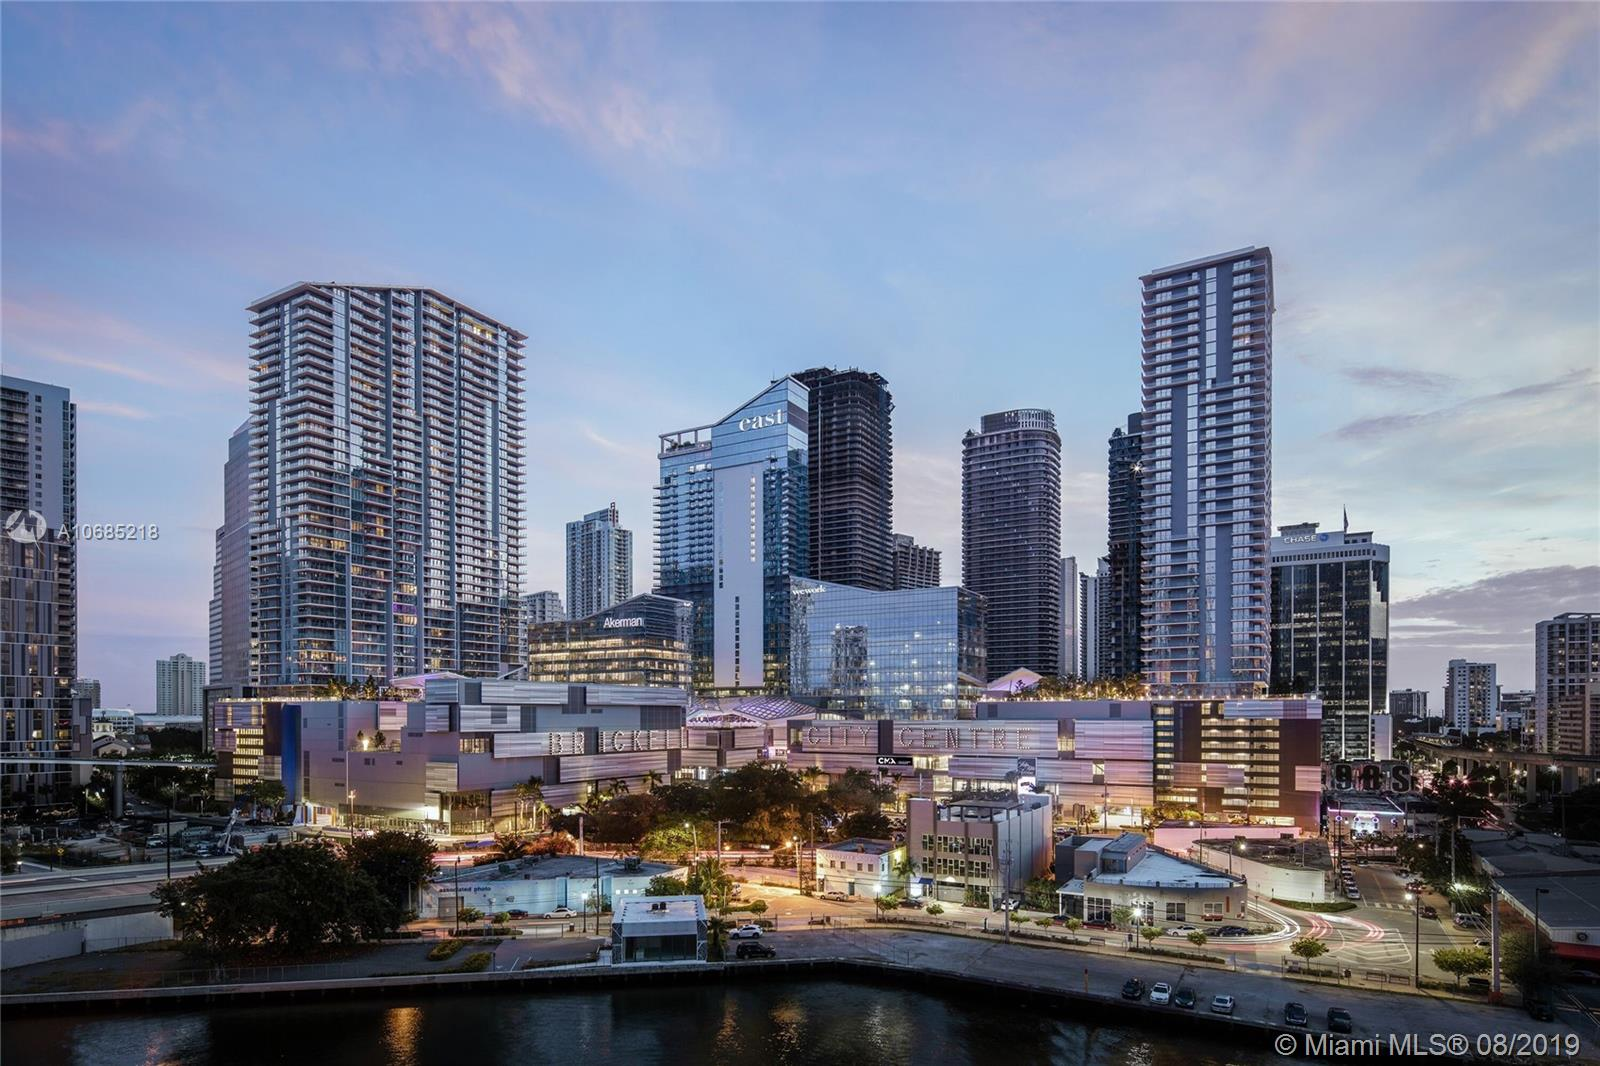 Magnificent one of a kind huge  three bedroom residence with breathtaking views in the middle of the phenomenal Brickell City Centre. High ceilings, and spectacular finishes, most avant-garde design Miami has to offer. World class amenities and steps from all the shopping and dining of Brickell City Centre Mall. Class, taste, prestige and luxury! Expansive wrap around 450 SQ FT terrace! Look no further! Custom closets and exquisite upgrades. Photos show a model unit 02 line.